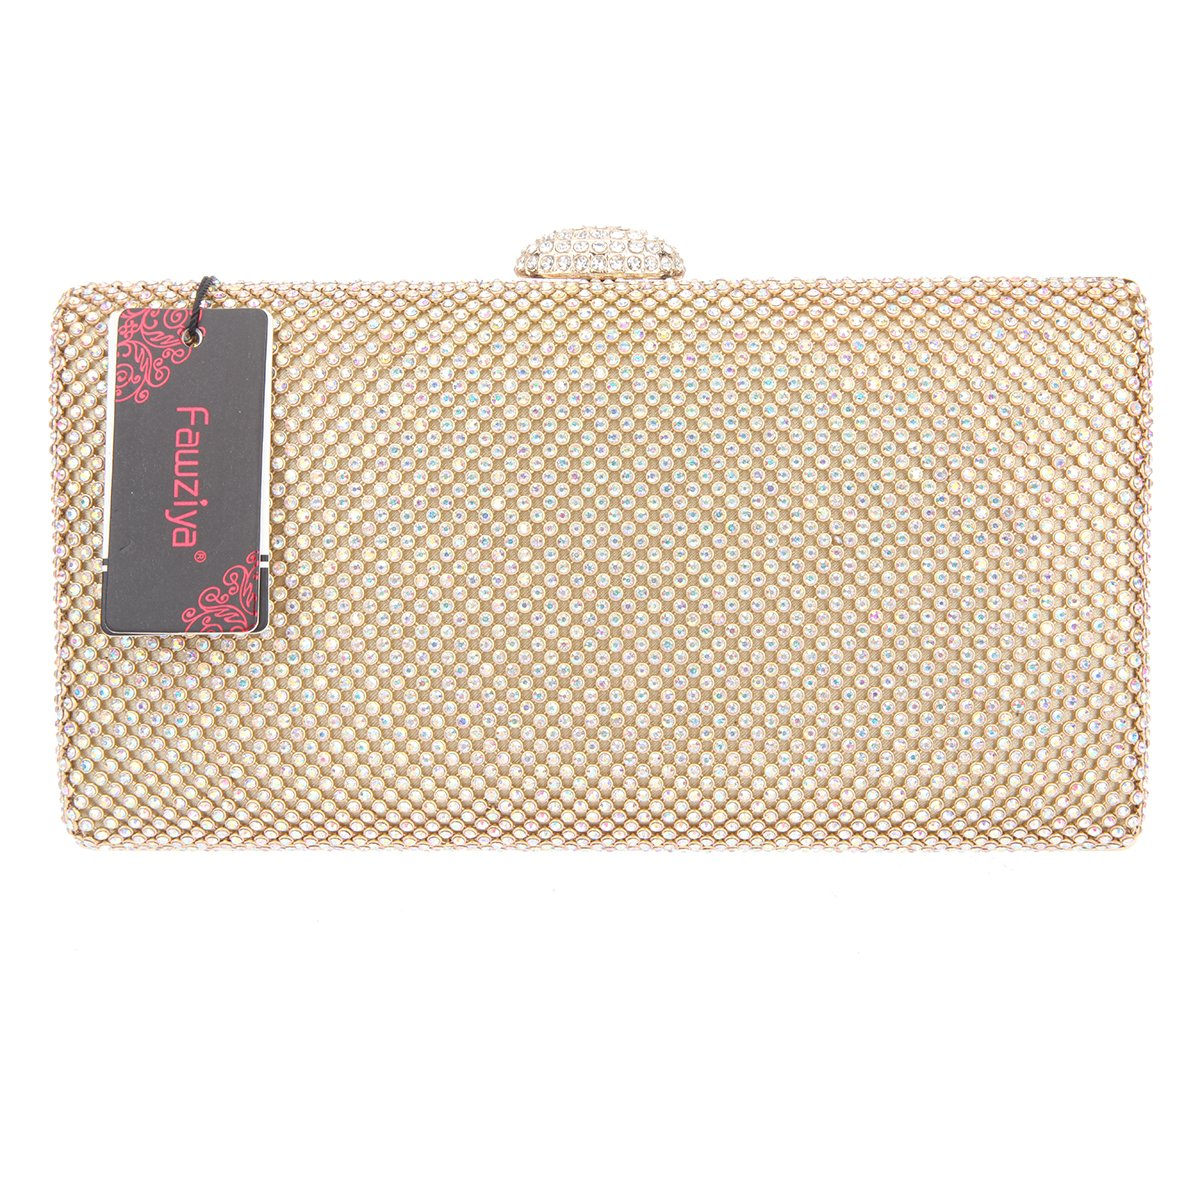 Fawziya Velvet Clutch Rhinestone Envelope Evening Purse